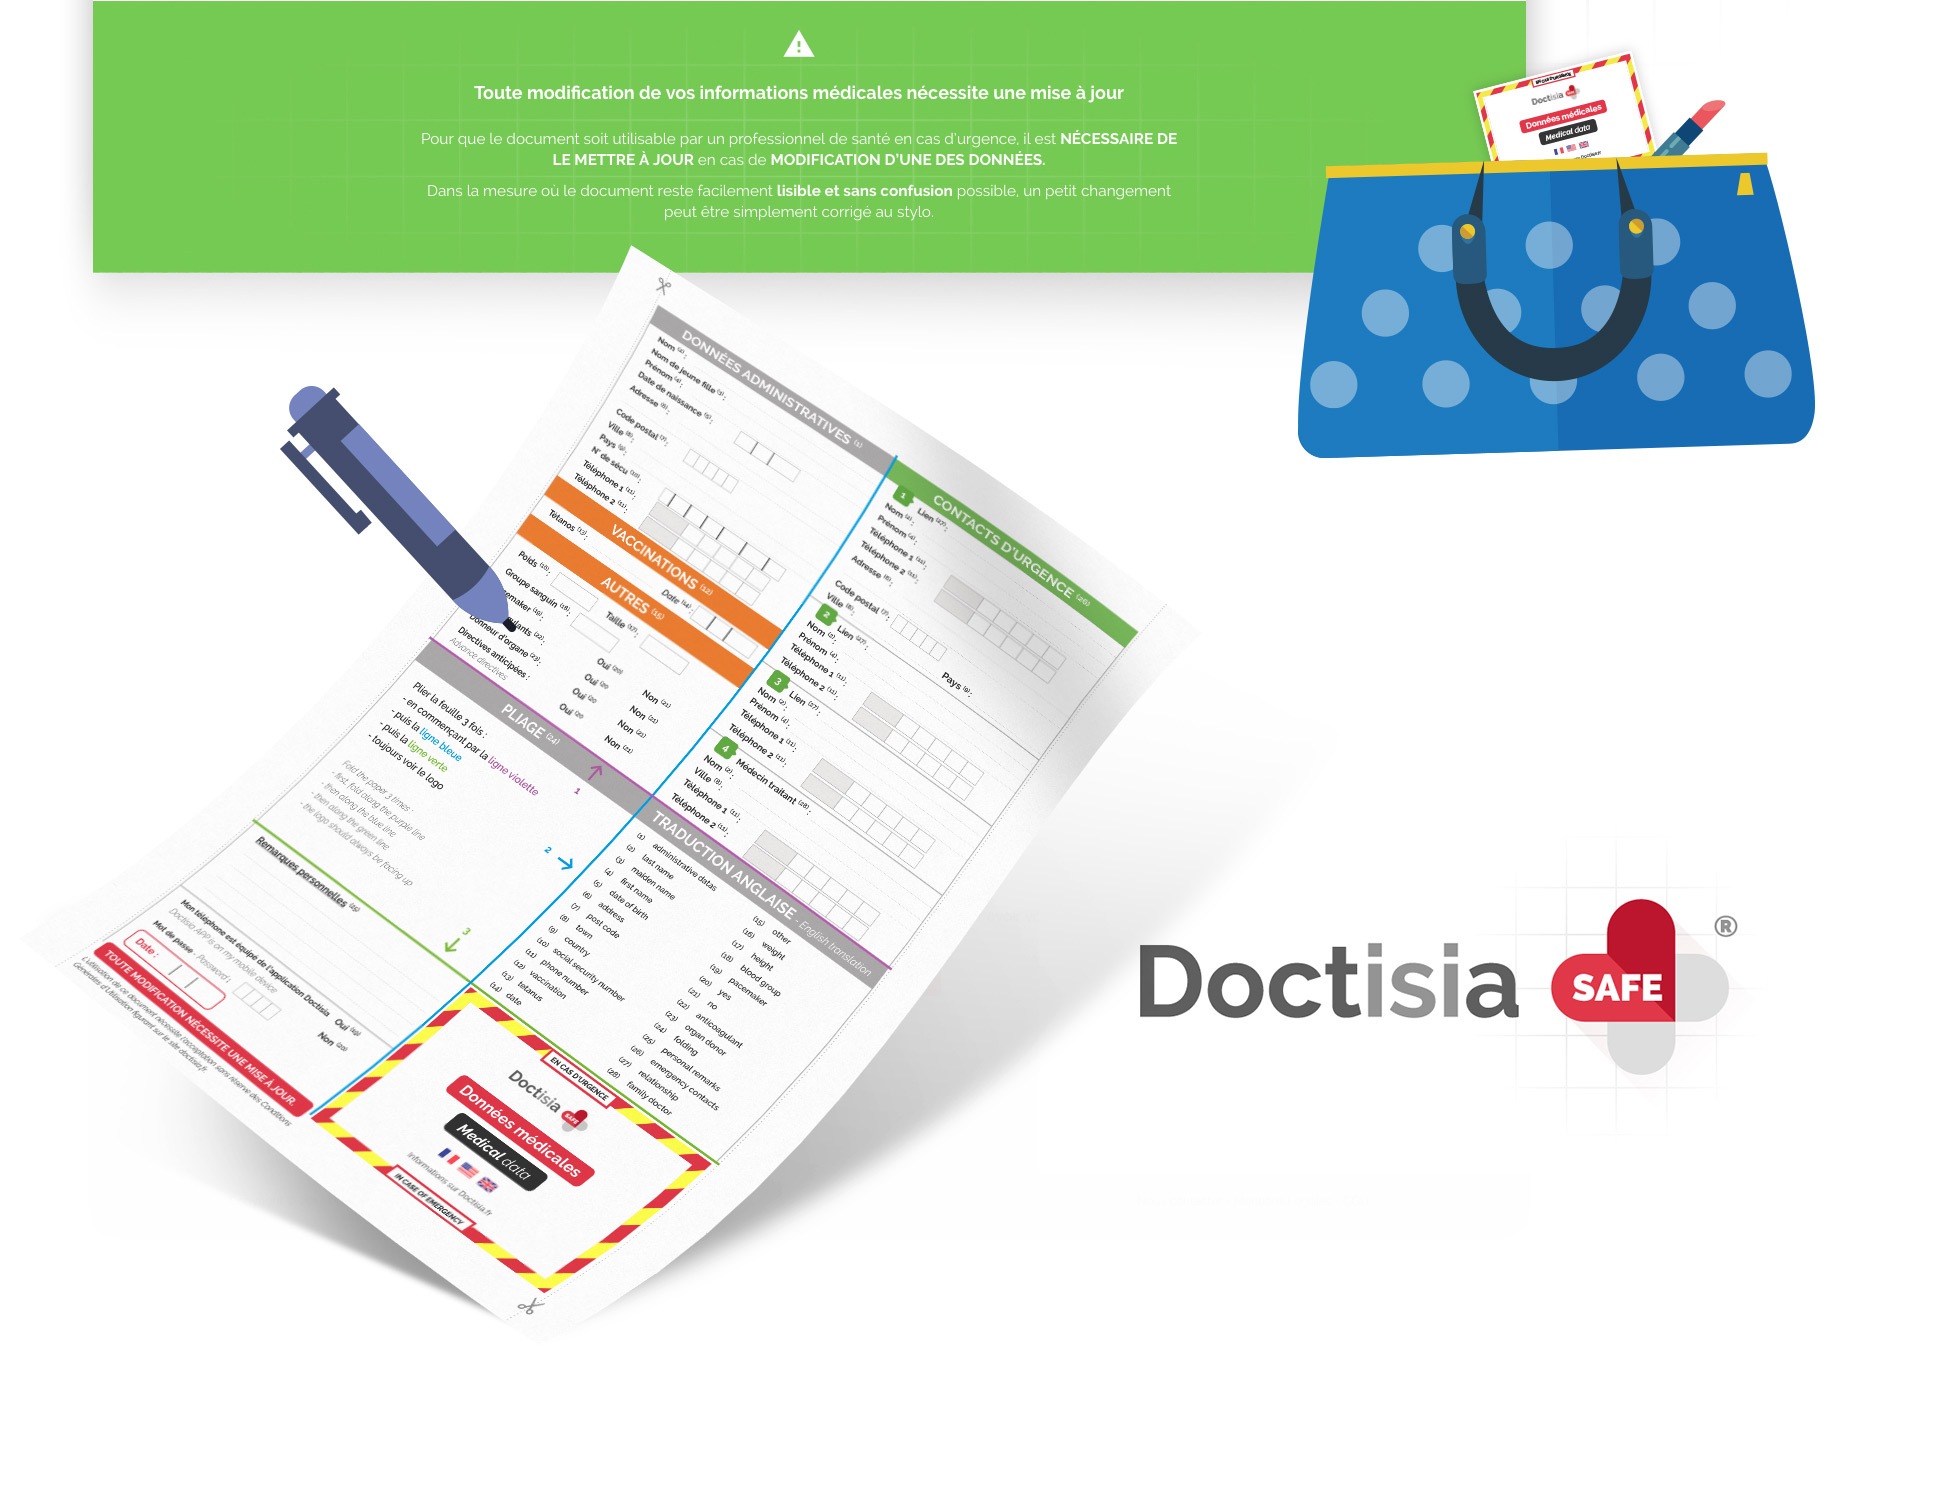 Doctisia SAFE